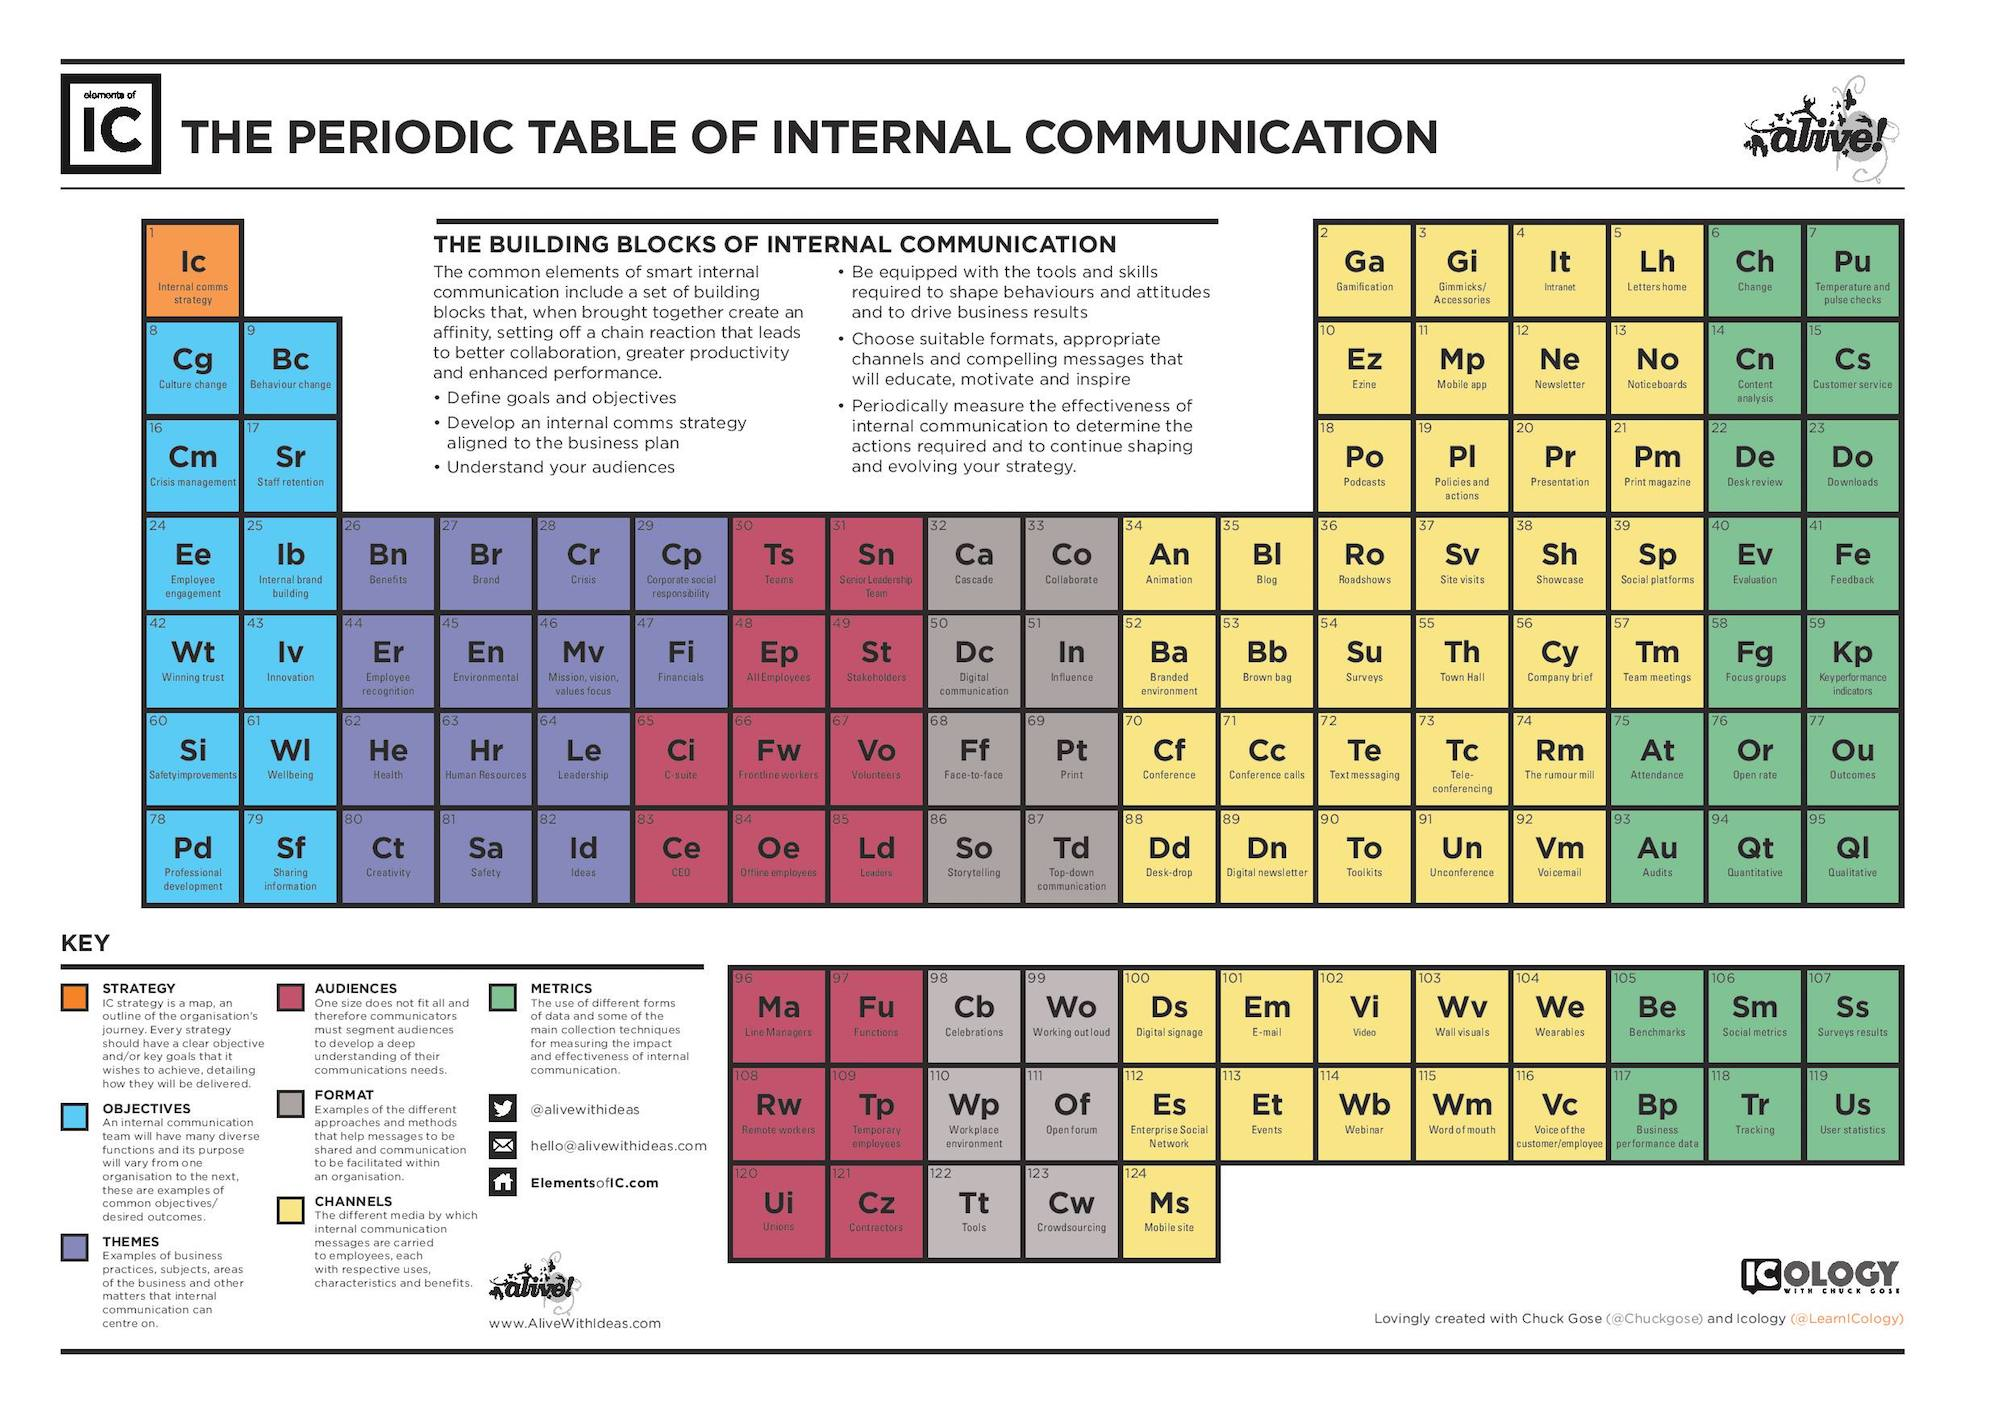 Periodic-table-internal-communication-chuck-gose-alan-oram.jpg